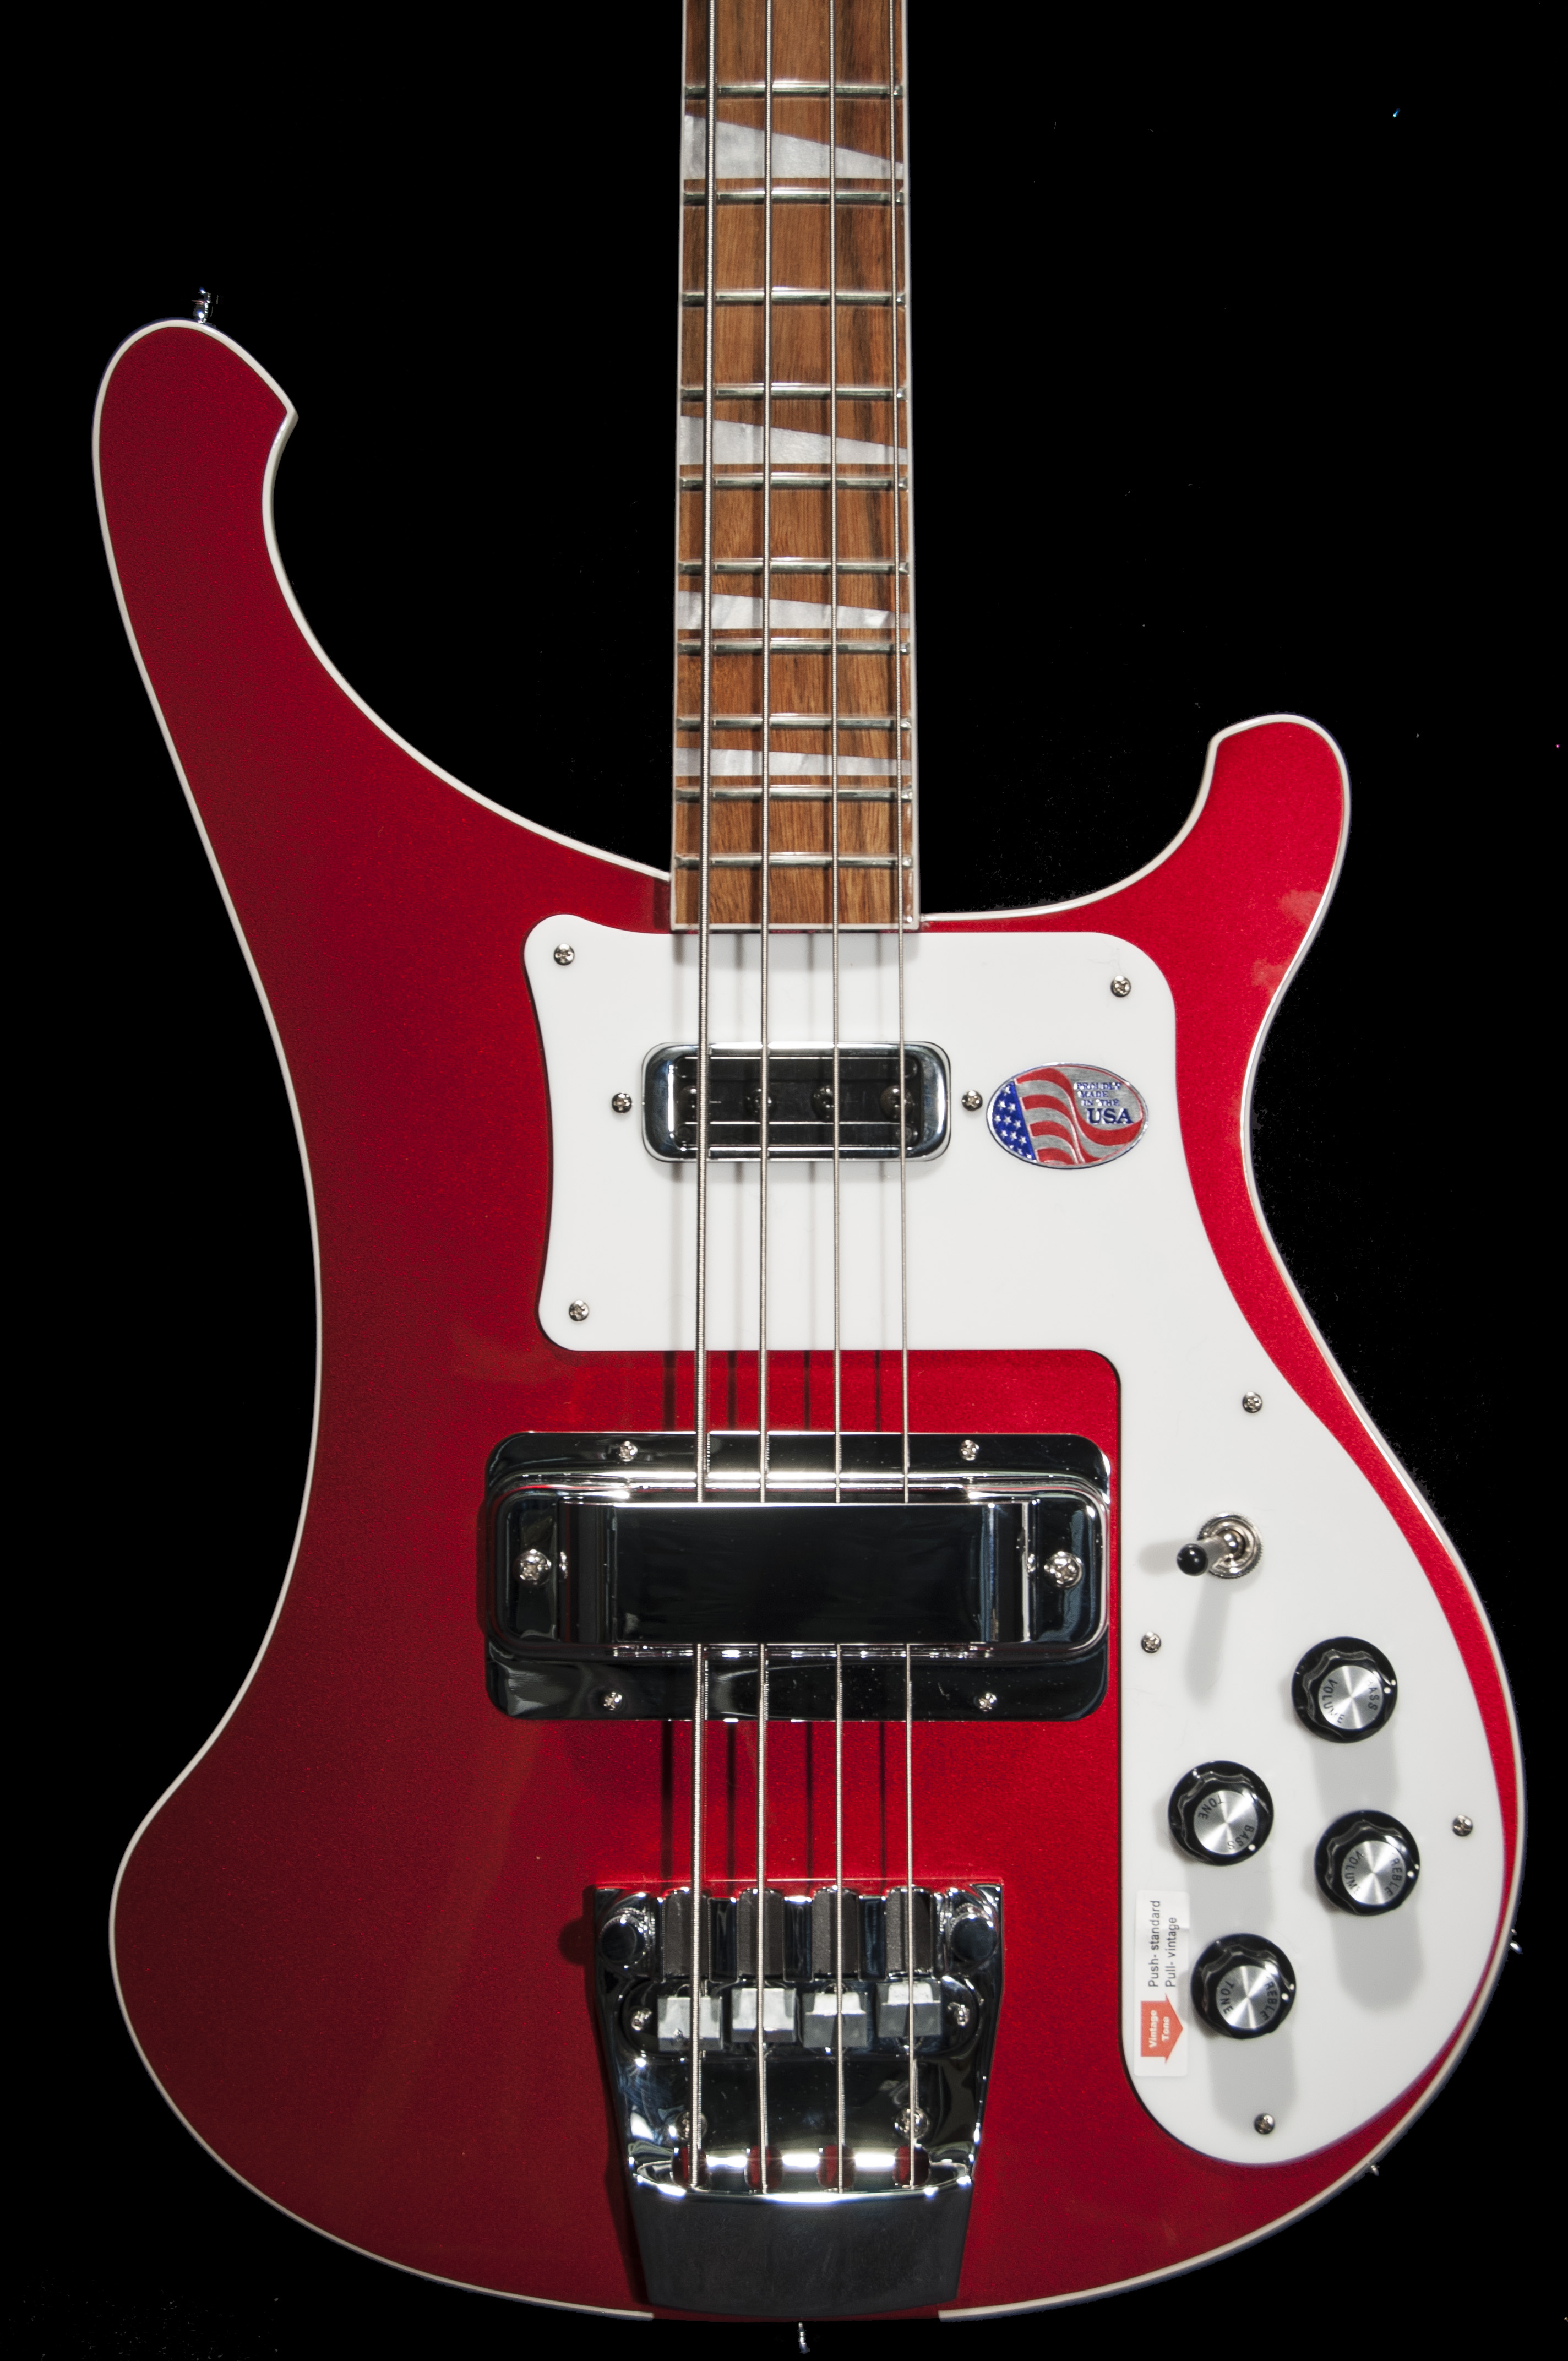 rickenbacker 4003 bass guitar in ruby red. Black Bedroom Furniture Sets. Home Design Ideas